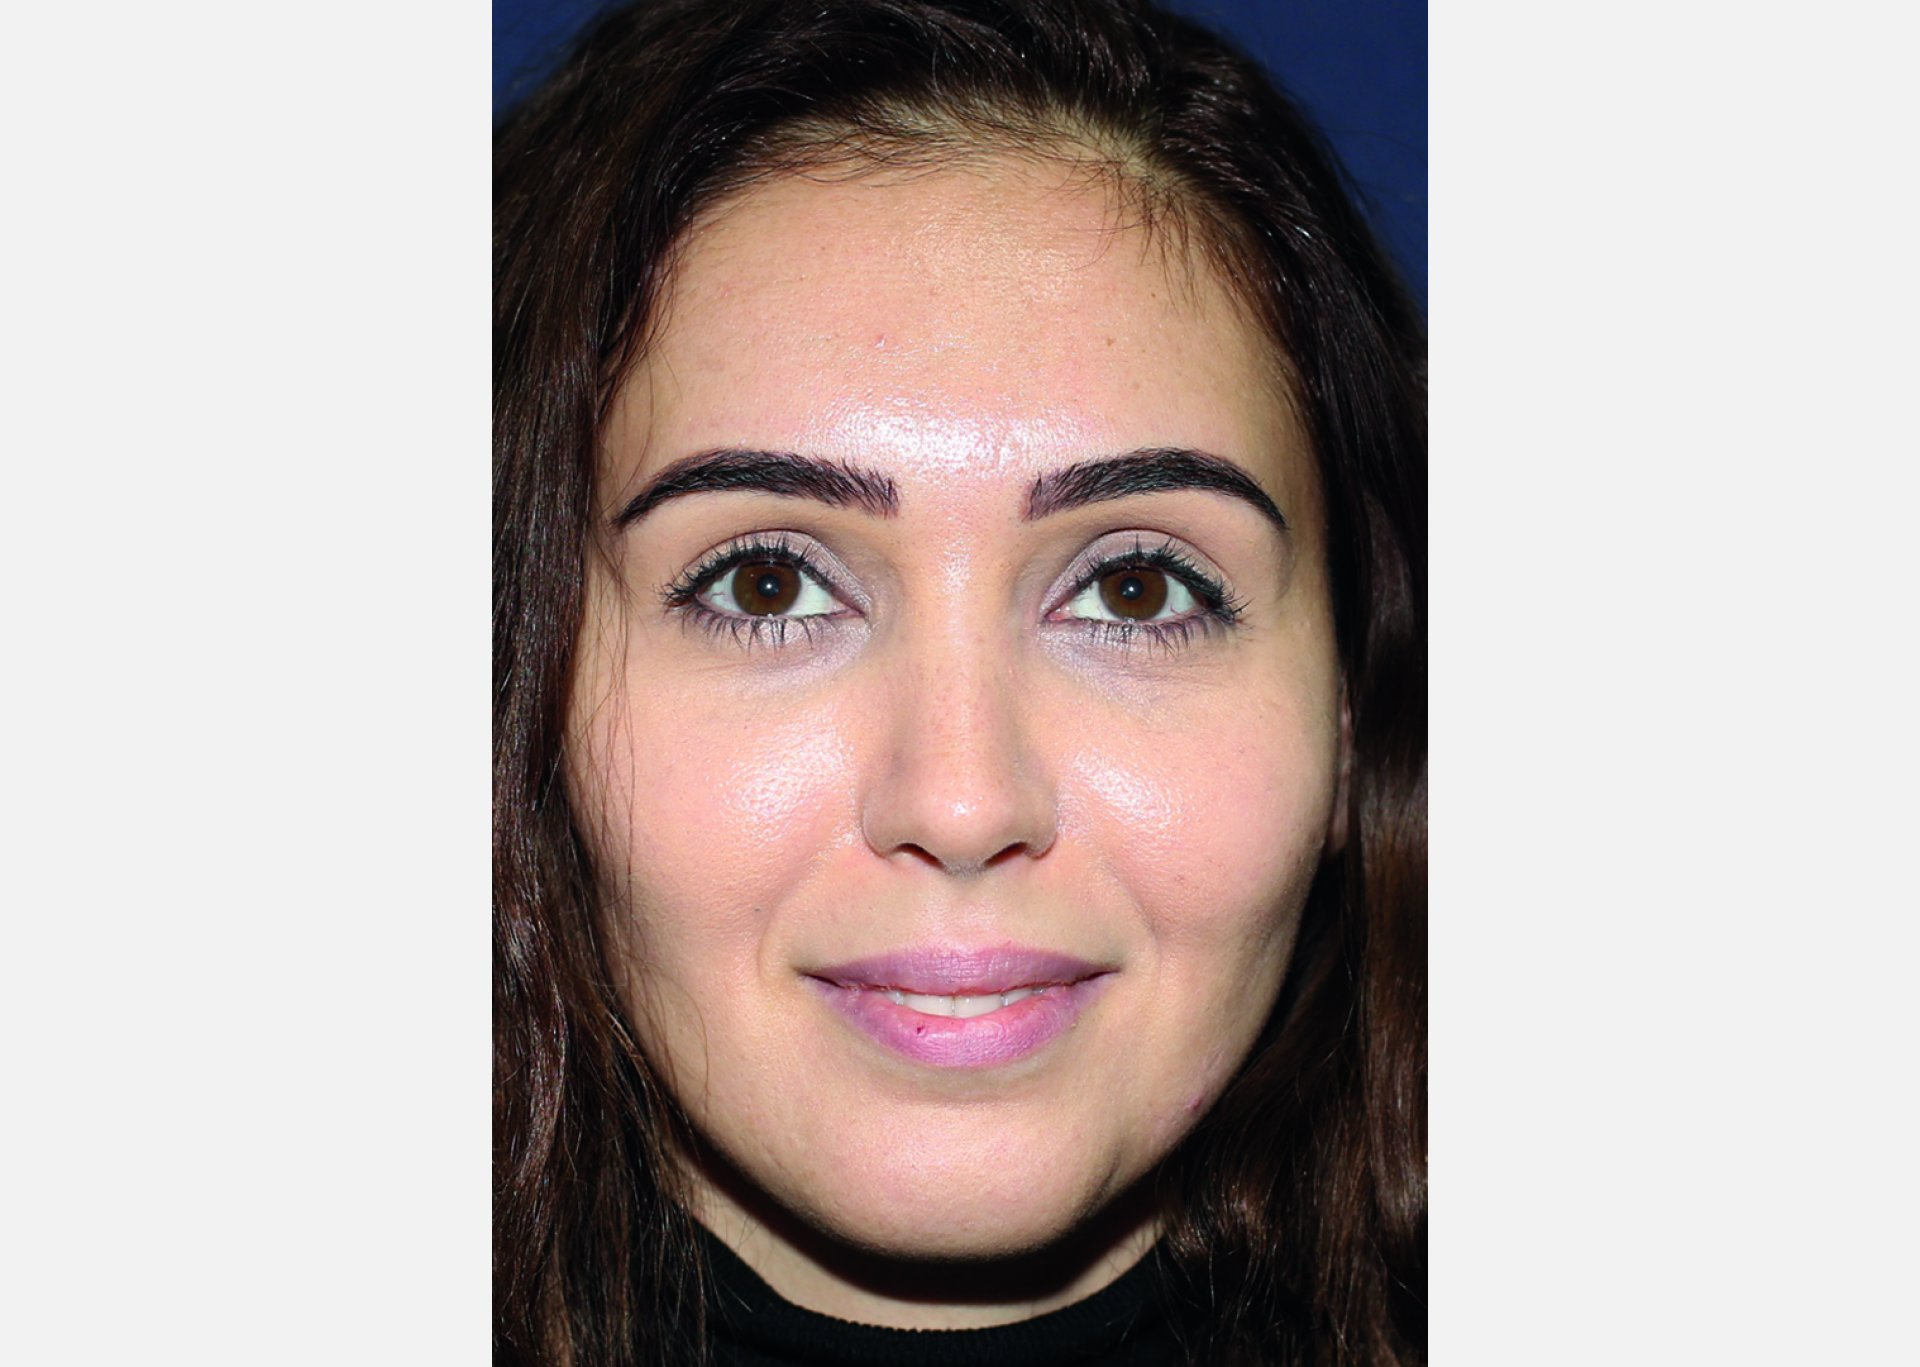 After-rhinoplasty in istanbul